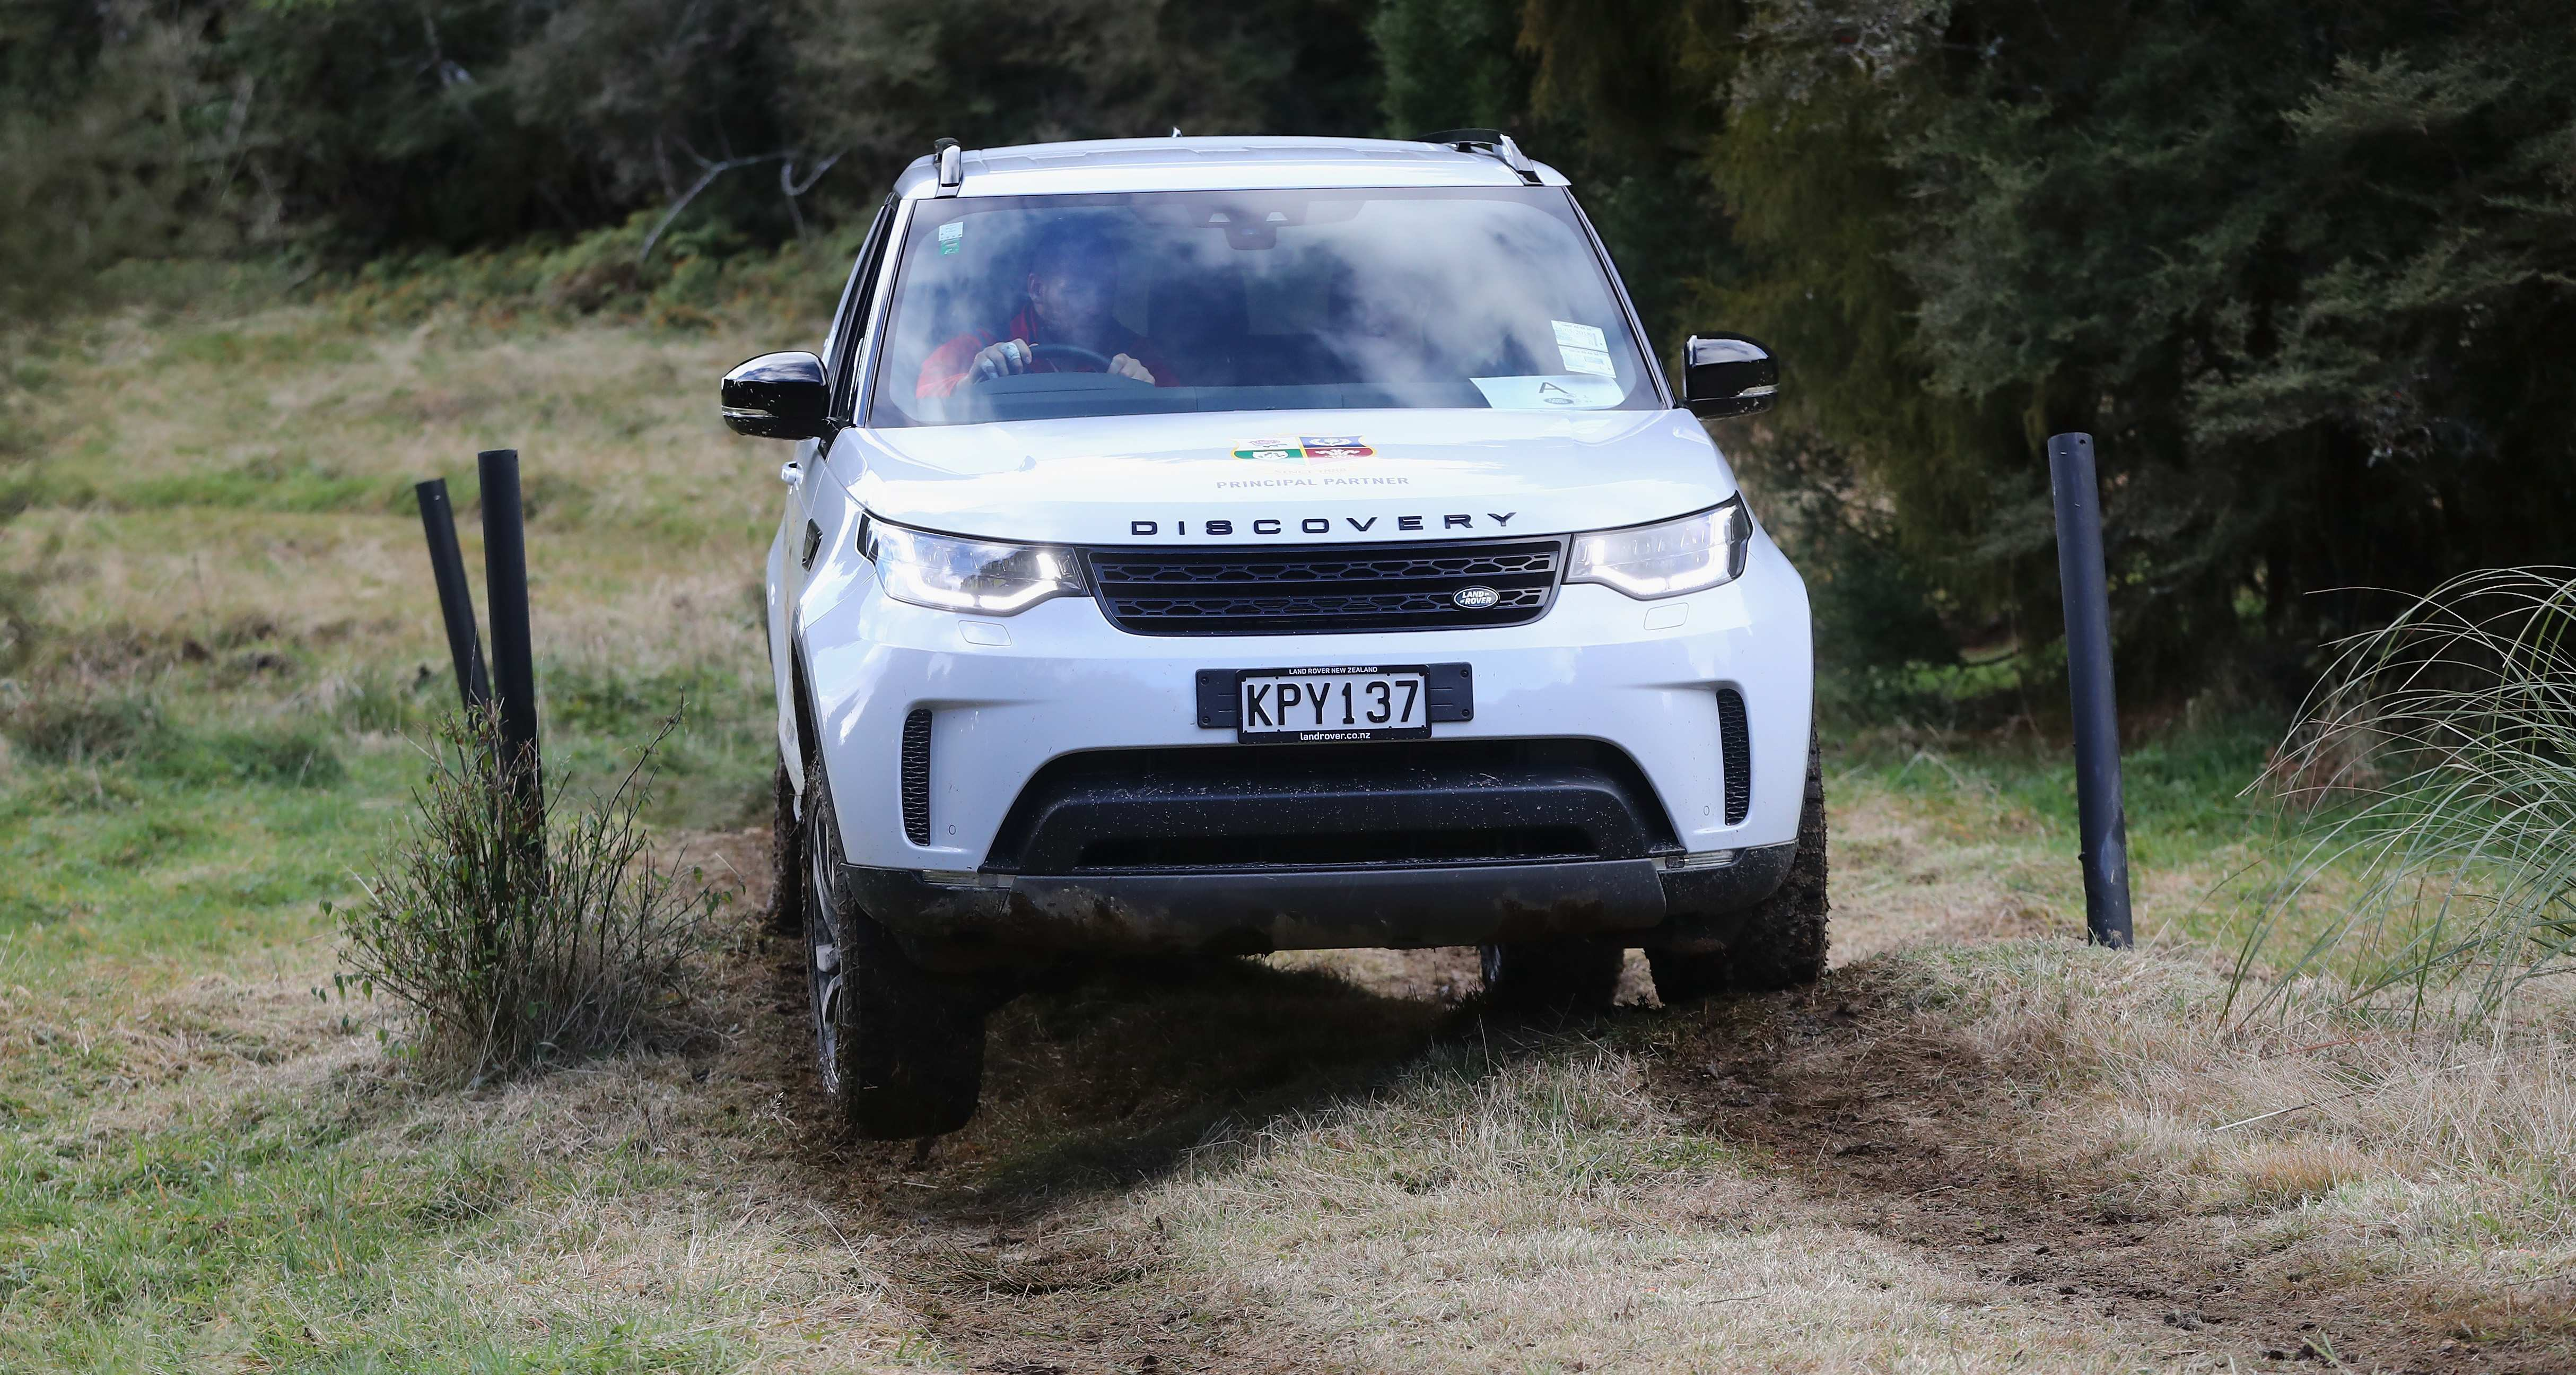 28 New Jaguar Land Rover Electric 2020 Release Date for Jaguar Land Rover Electric 2020